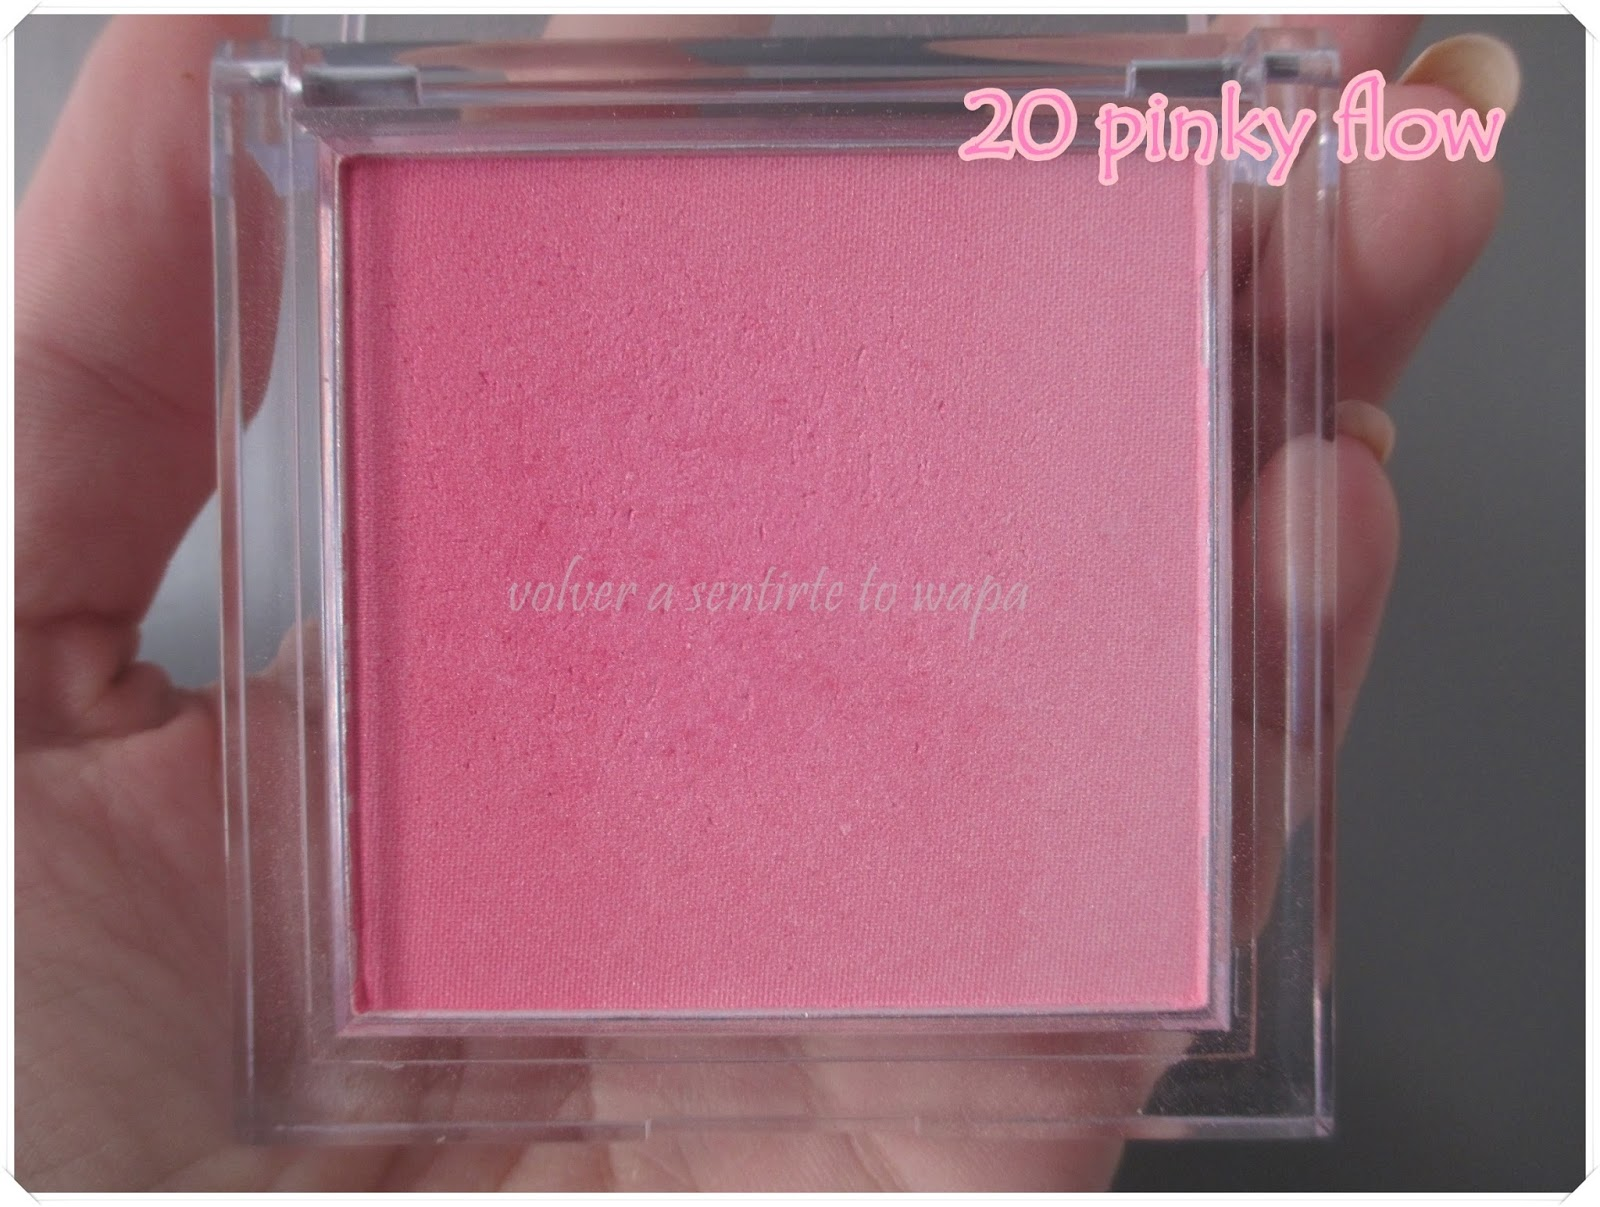 Coloretes de Essence - Blush up! - 20 pinky flow